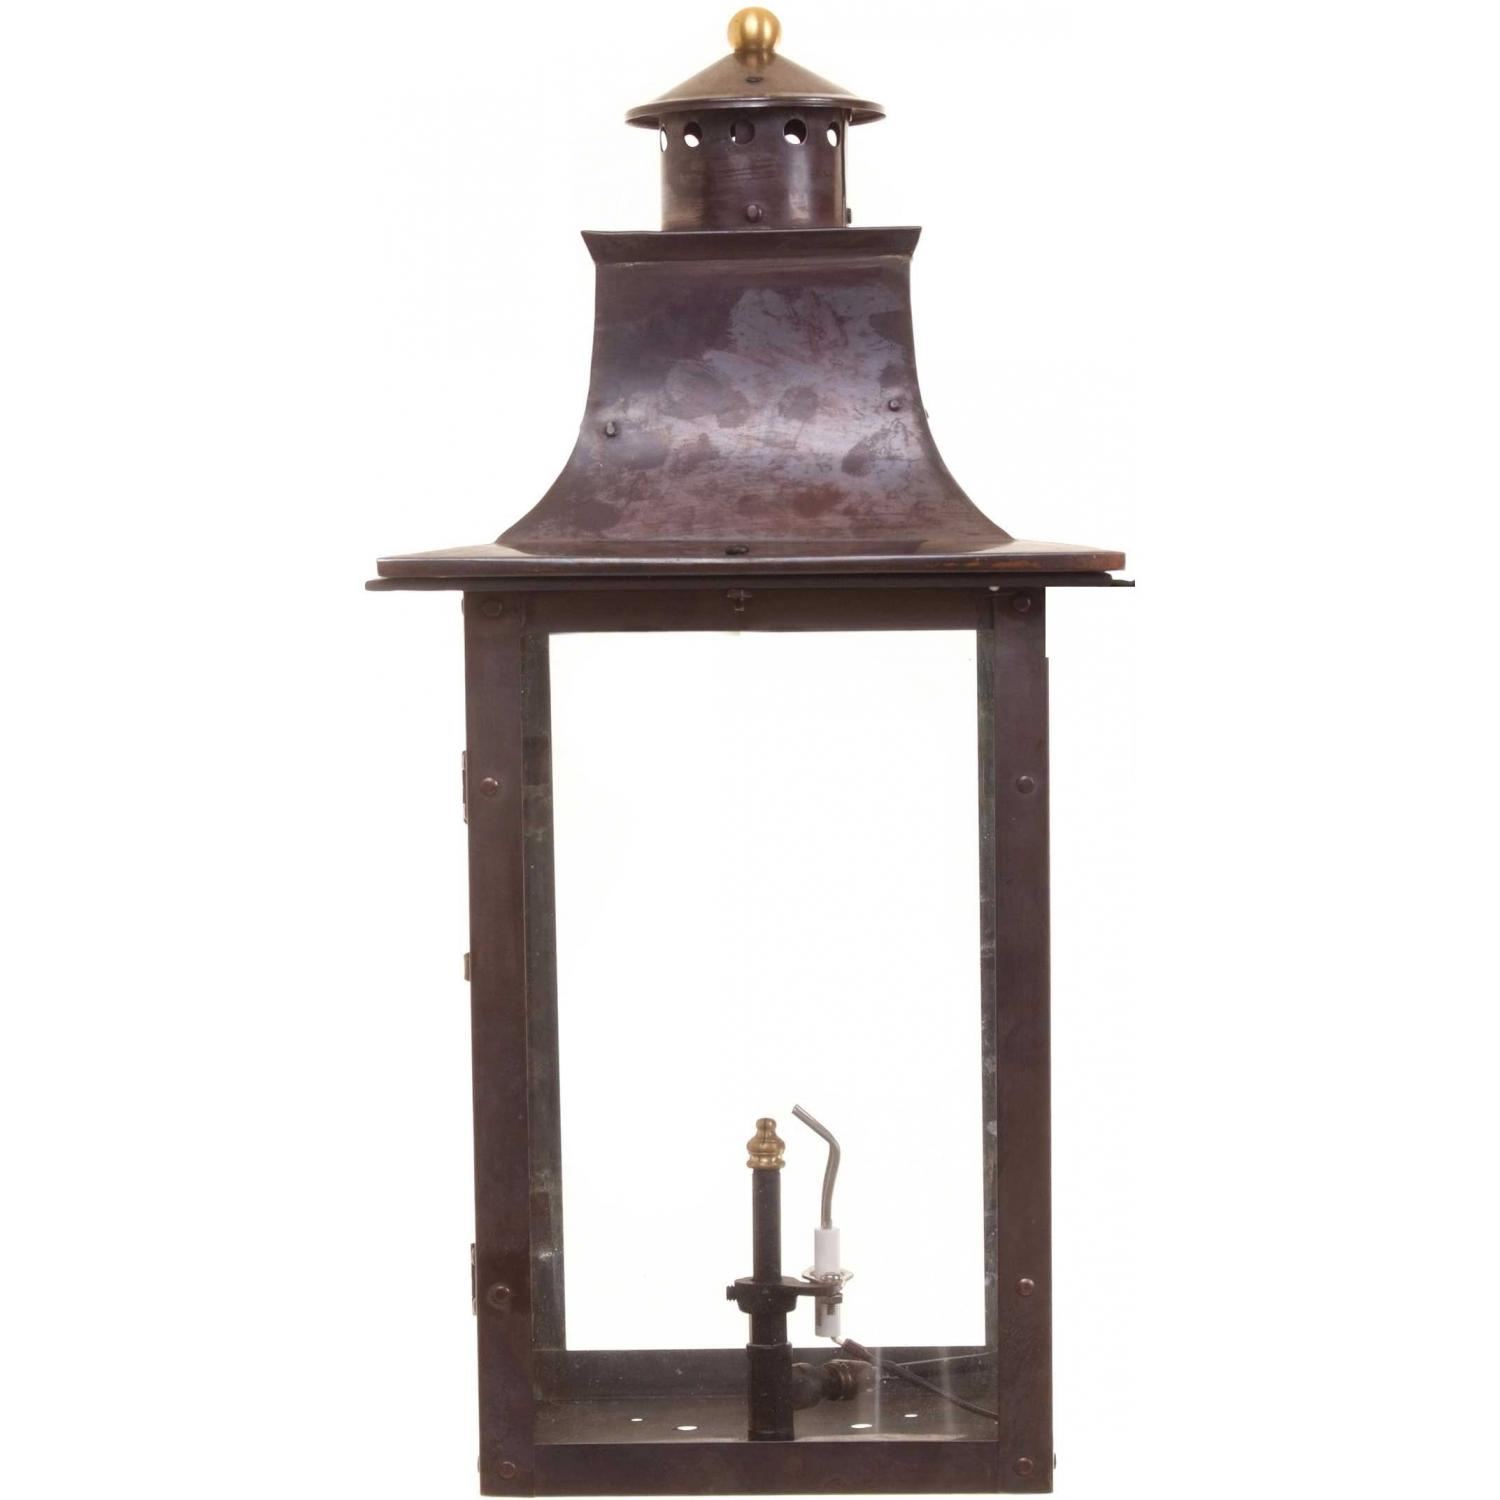 Regency GL21 Faye Rue Small Natural Gas Light With Open Flame Burner And Electronic Ignition On Ceiling Mount